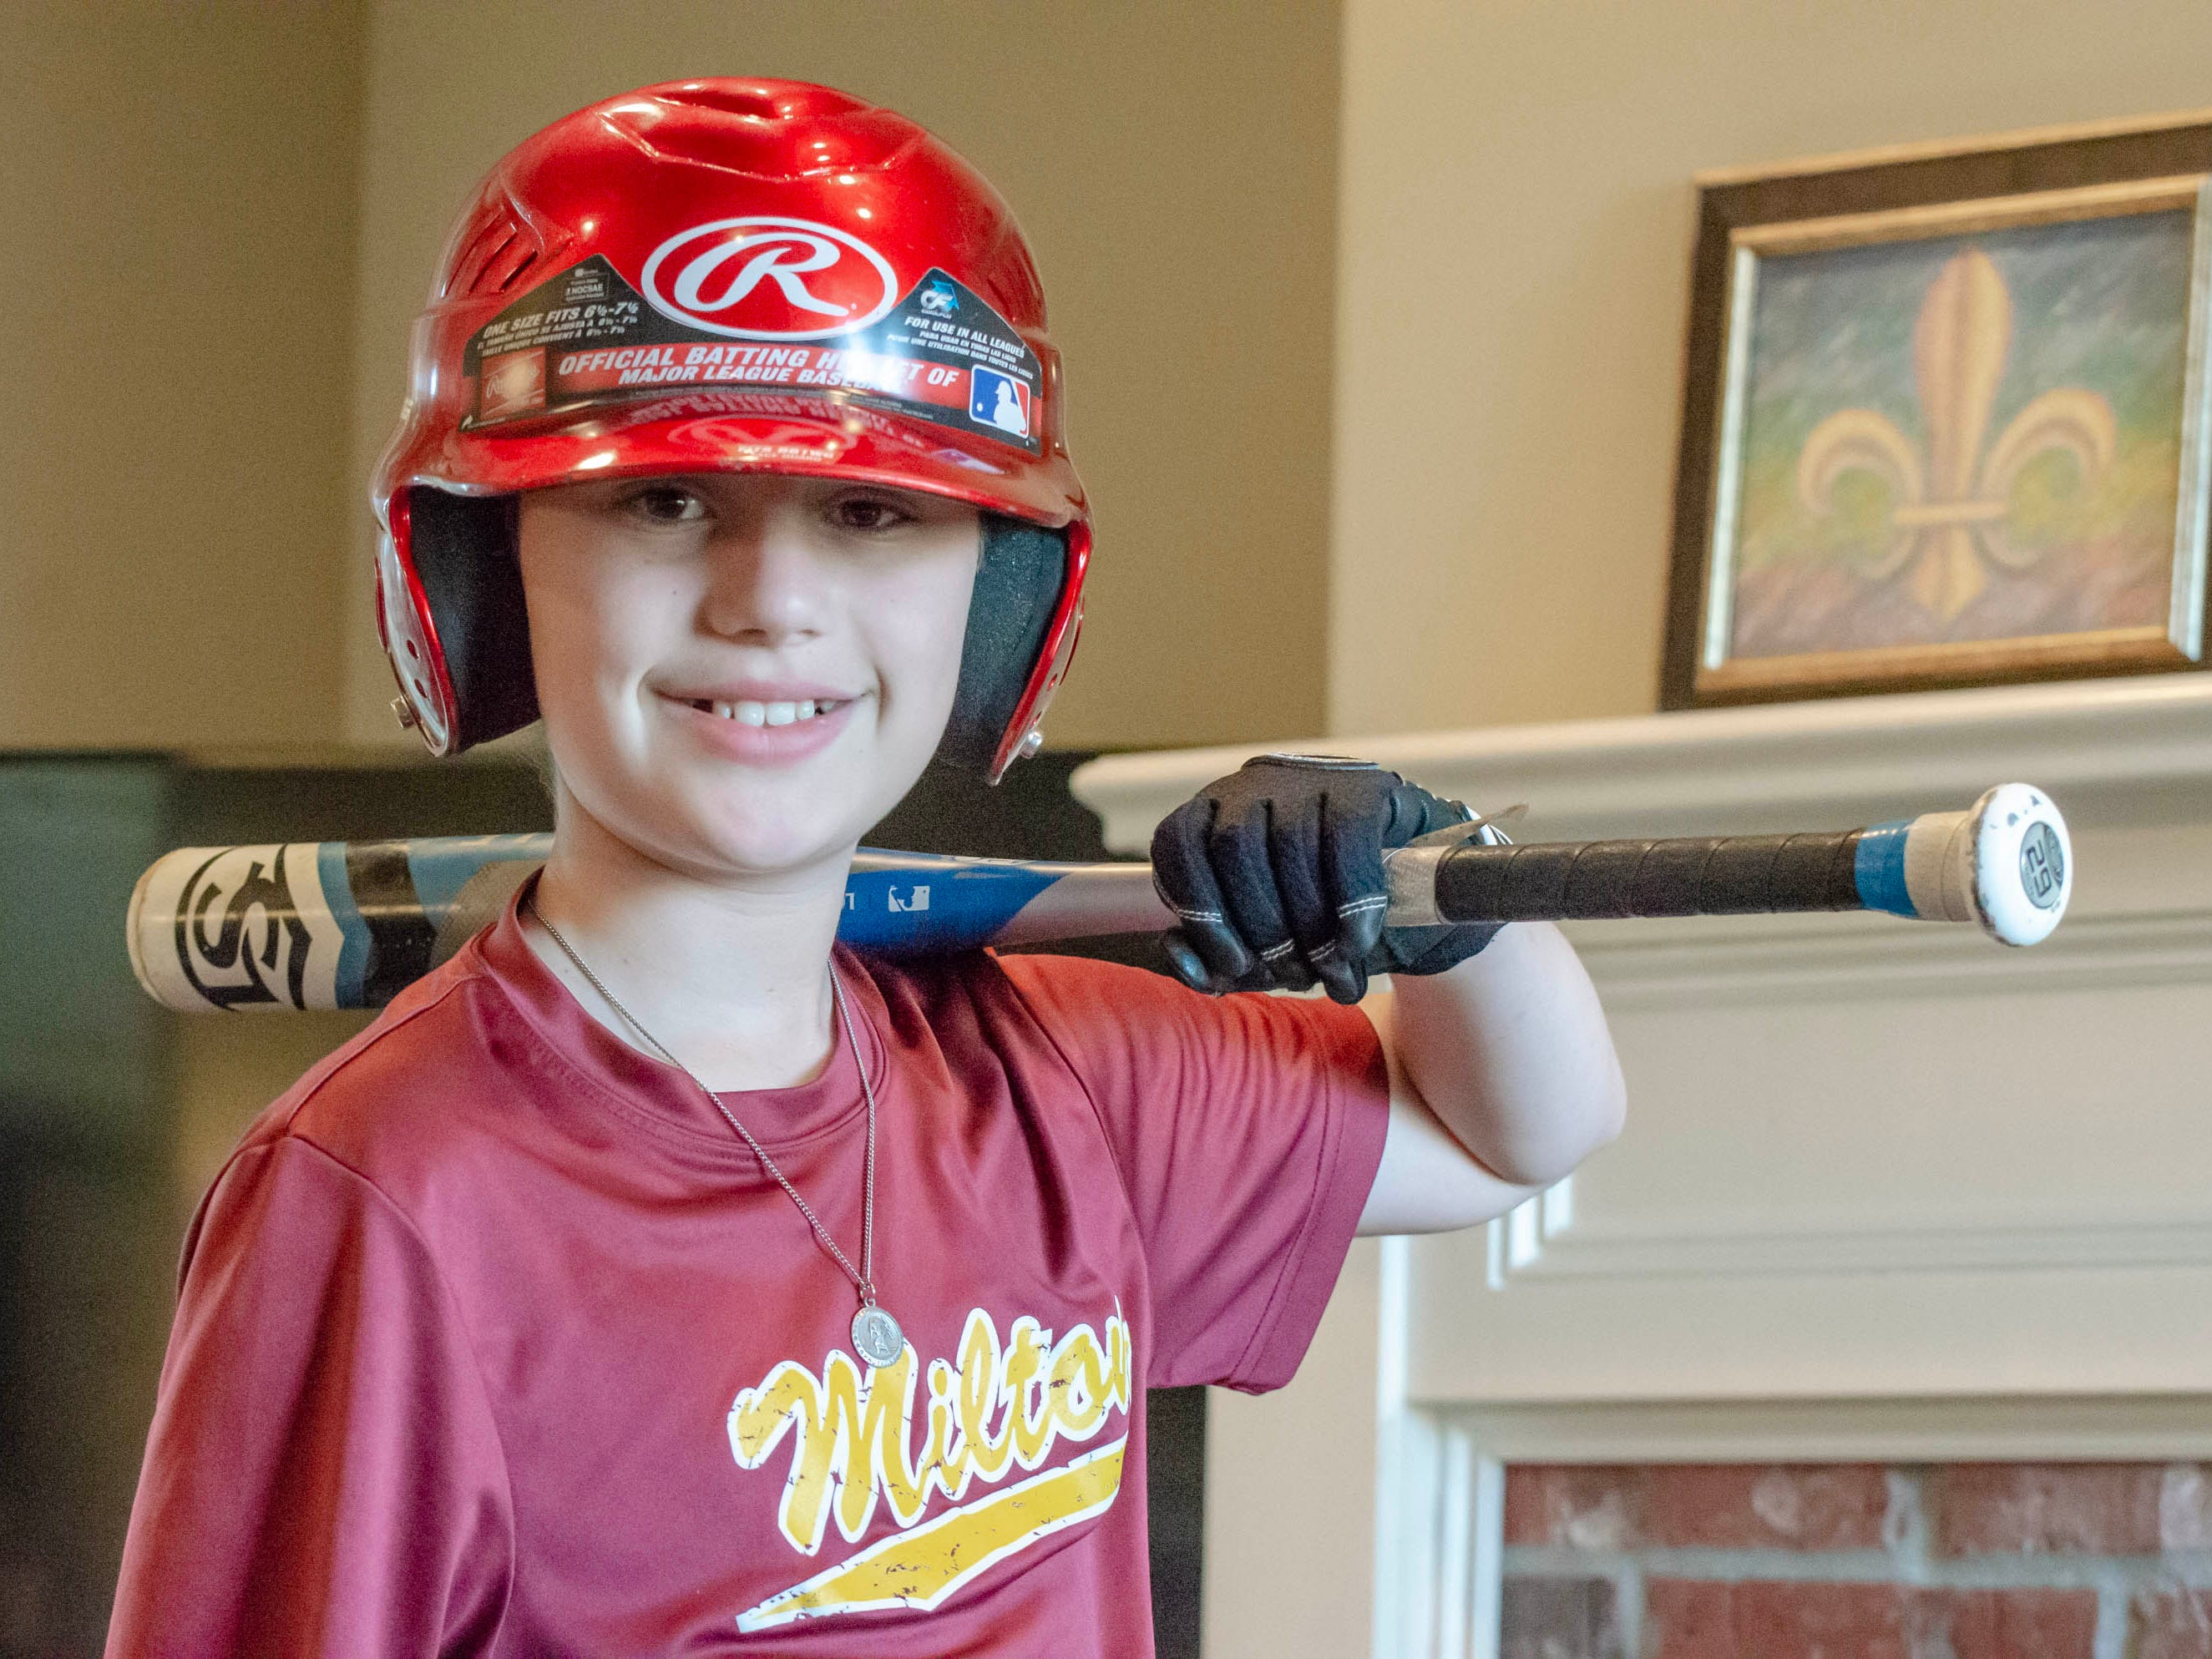 Colin McGee loves baseball, dance, video games and more. Colin, 11, had a 7-inch malignant tumor and kidney removed, went through months of chemotherapy. He rang the bell celebrating his remission in January.